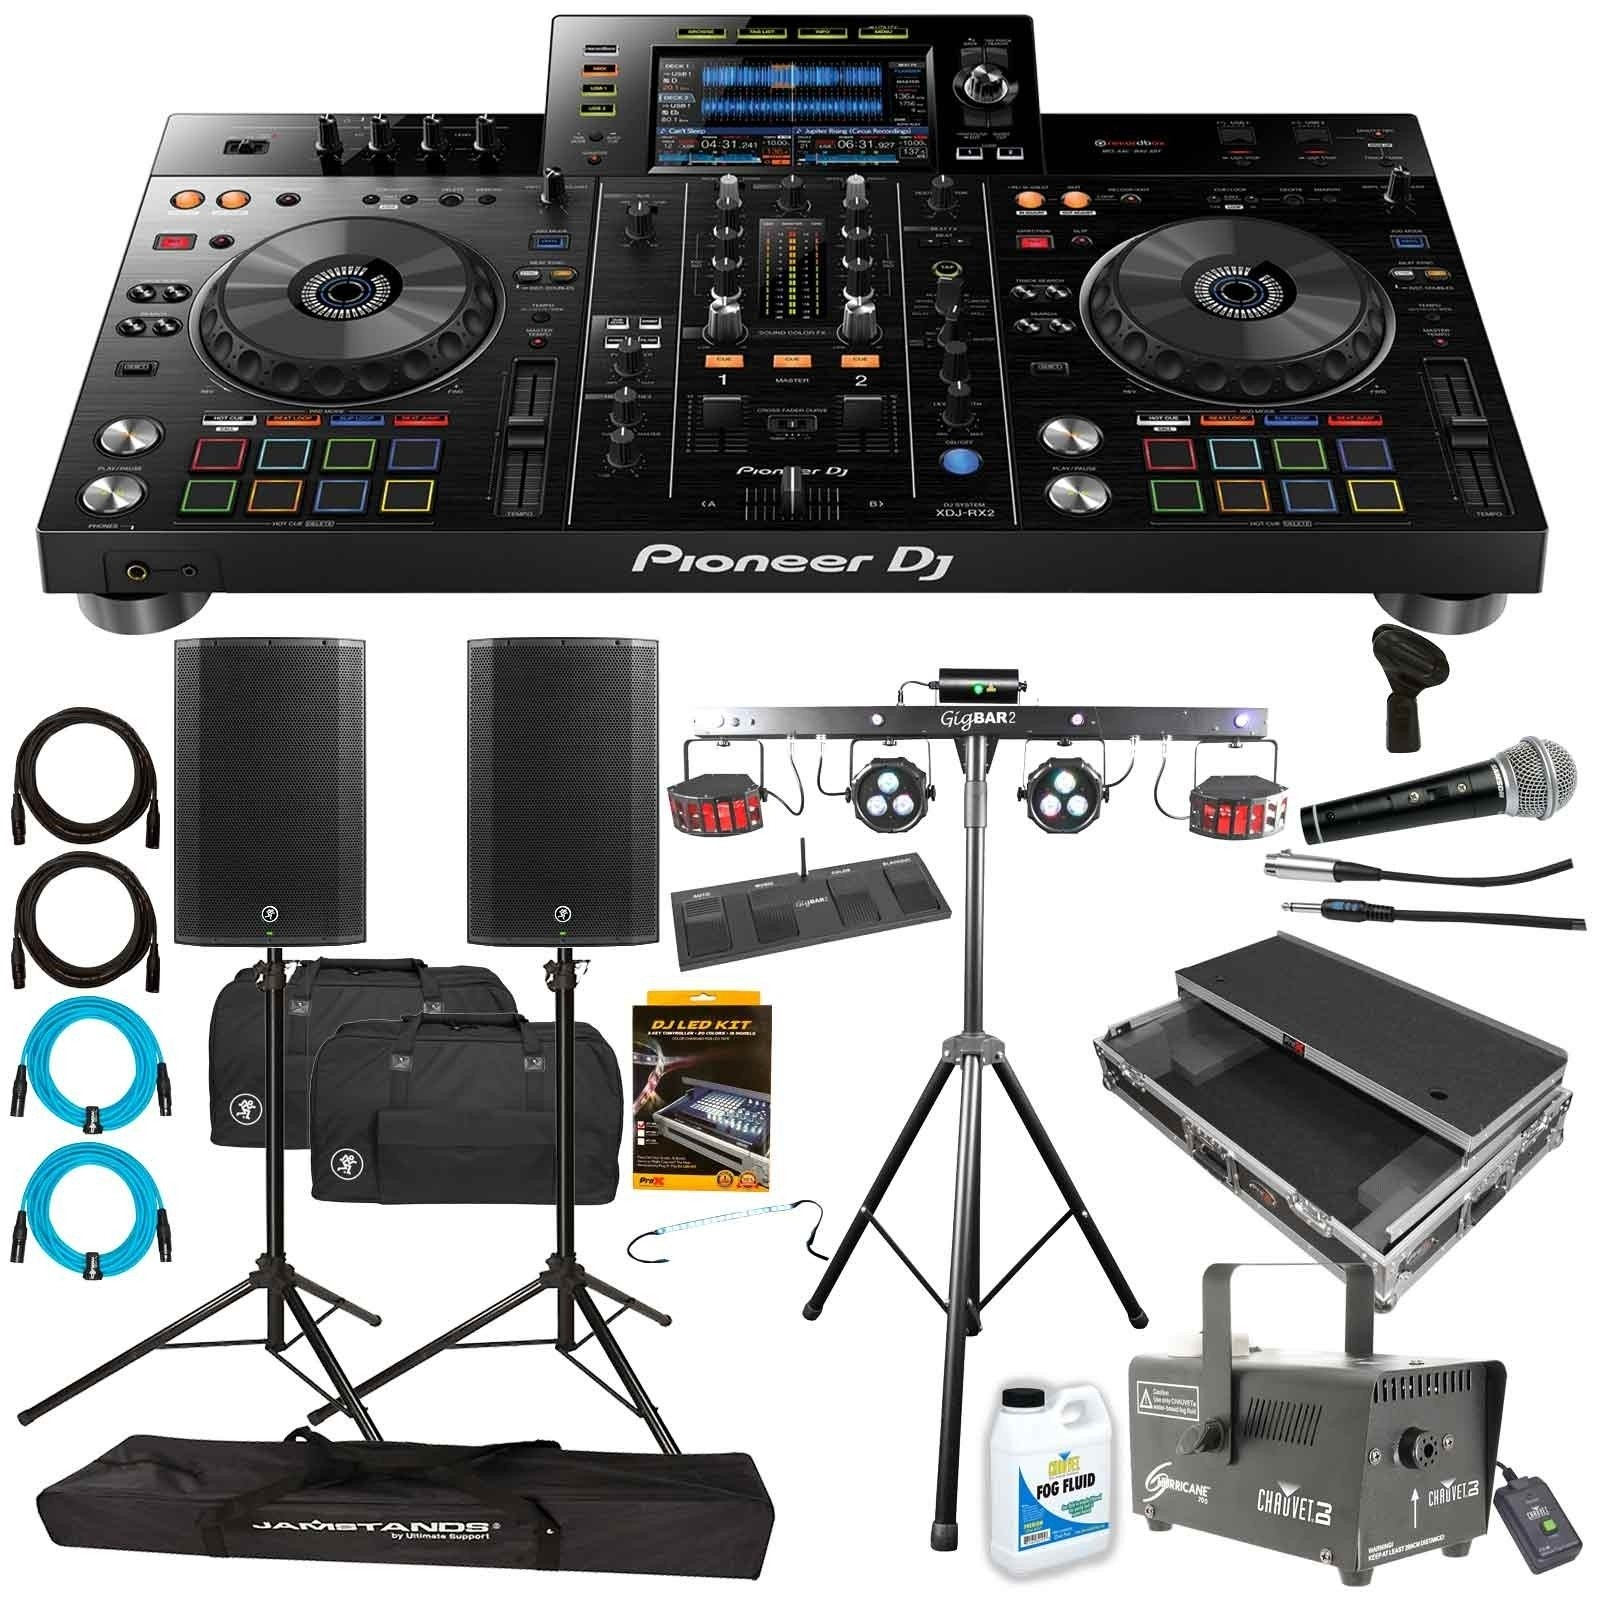 Pioneer DJ XDJ RX2 Rekordbox DJ System with Mackie Thump15A Speakers & Chauvet DJ GigBAR 2 Light System Package